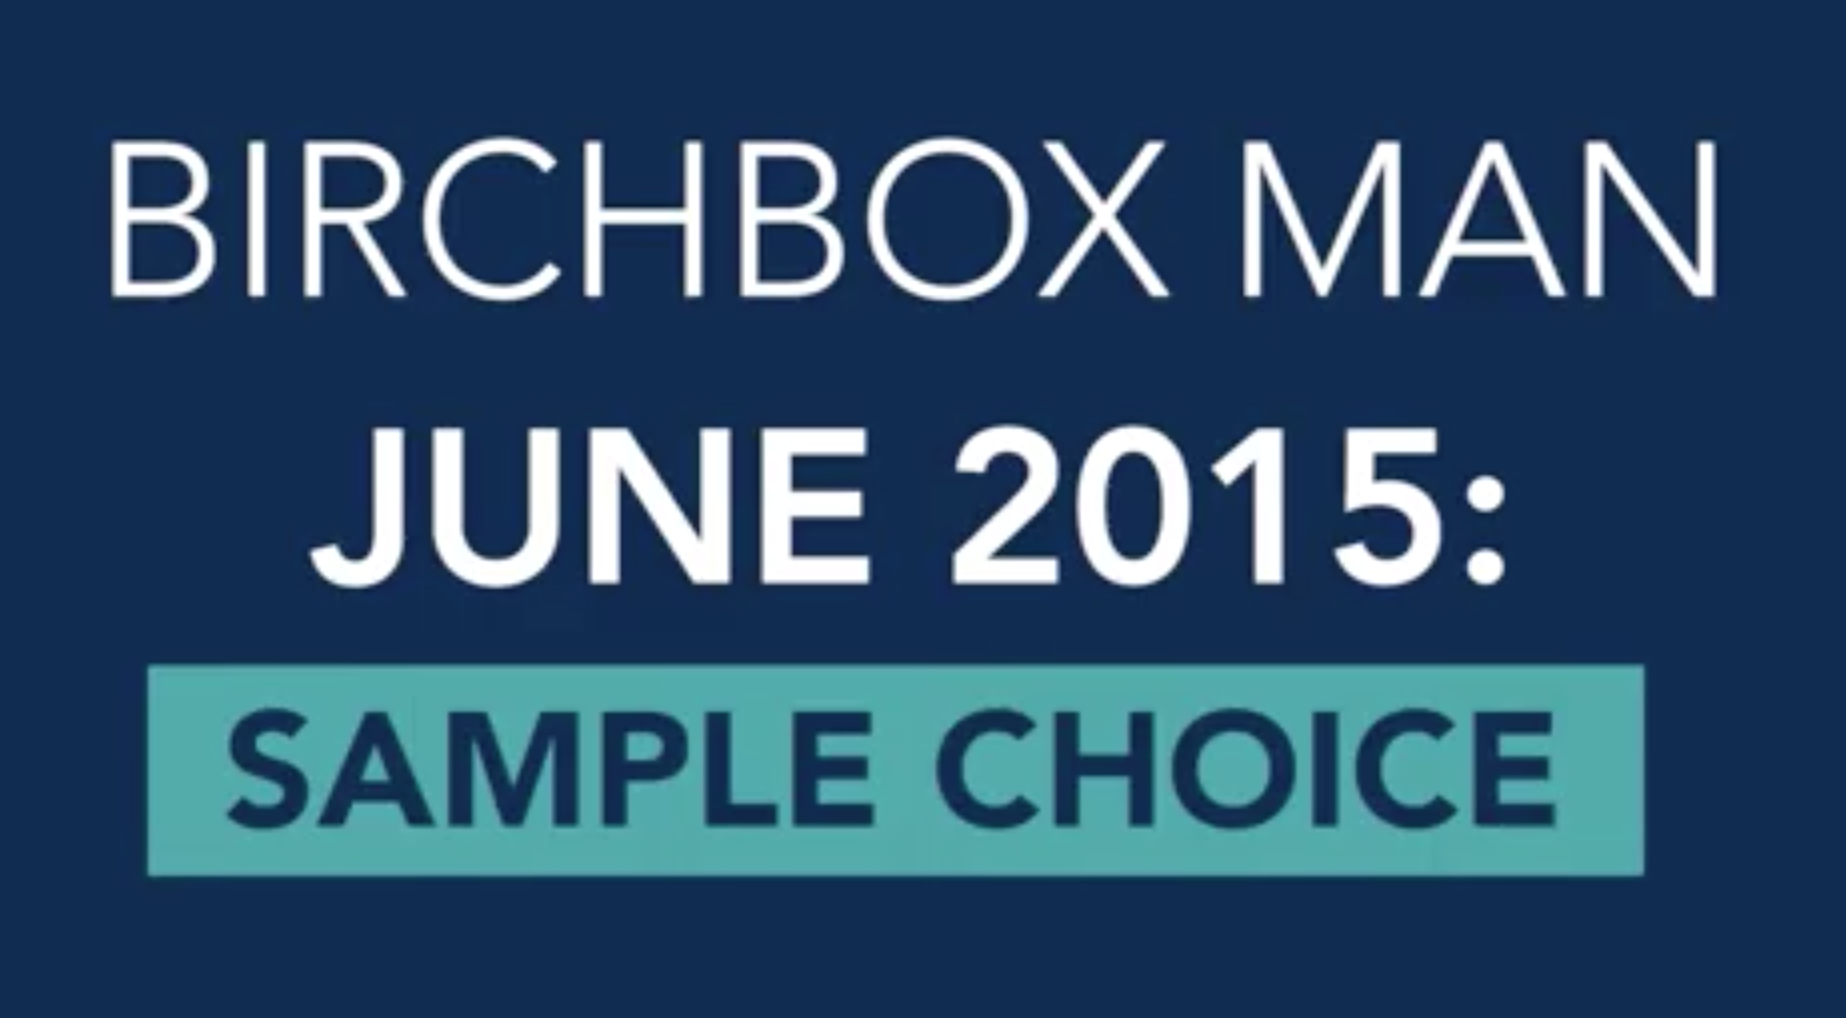 Birchbox Man June 2015 Sample Choice Revealed + Power Play